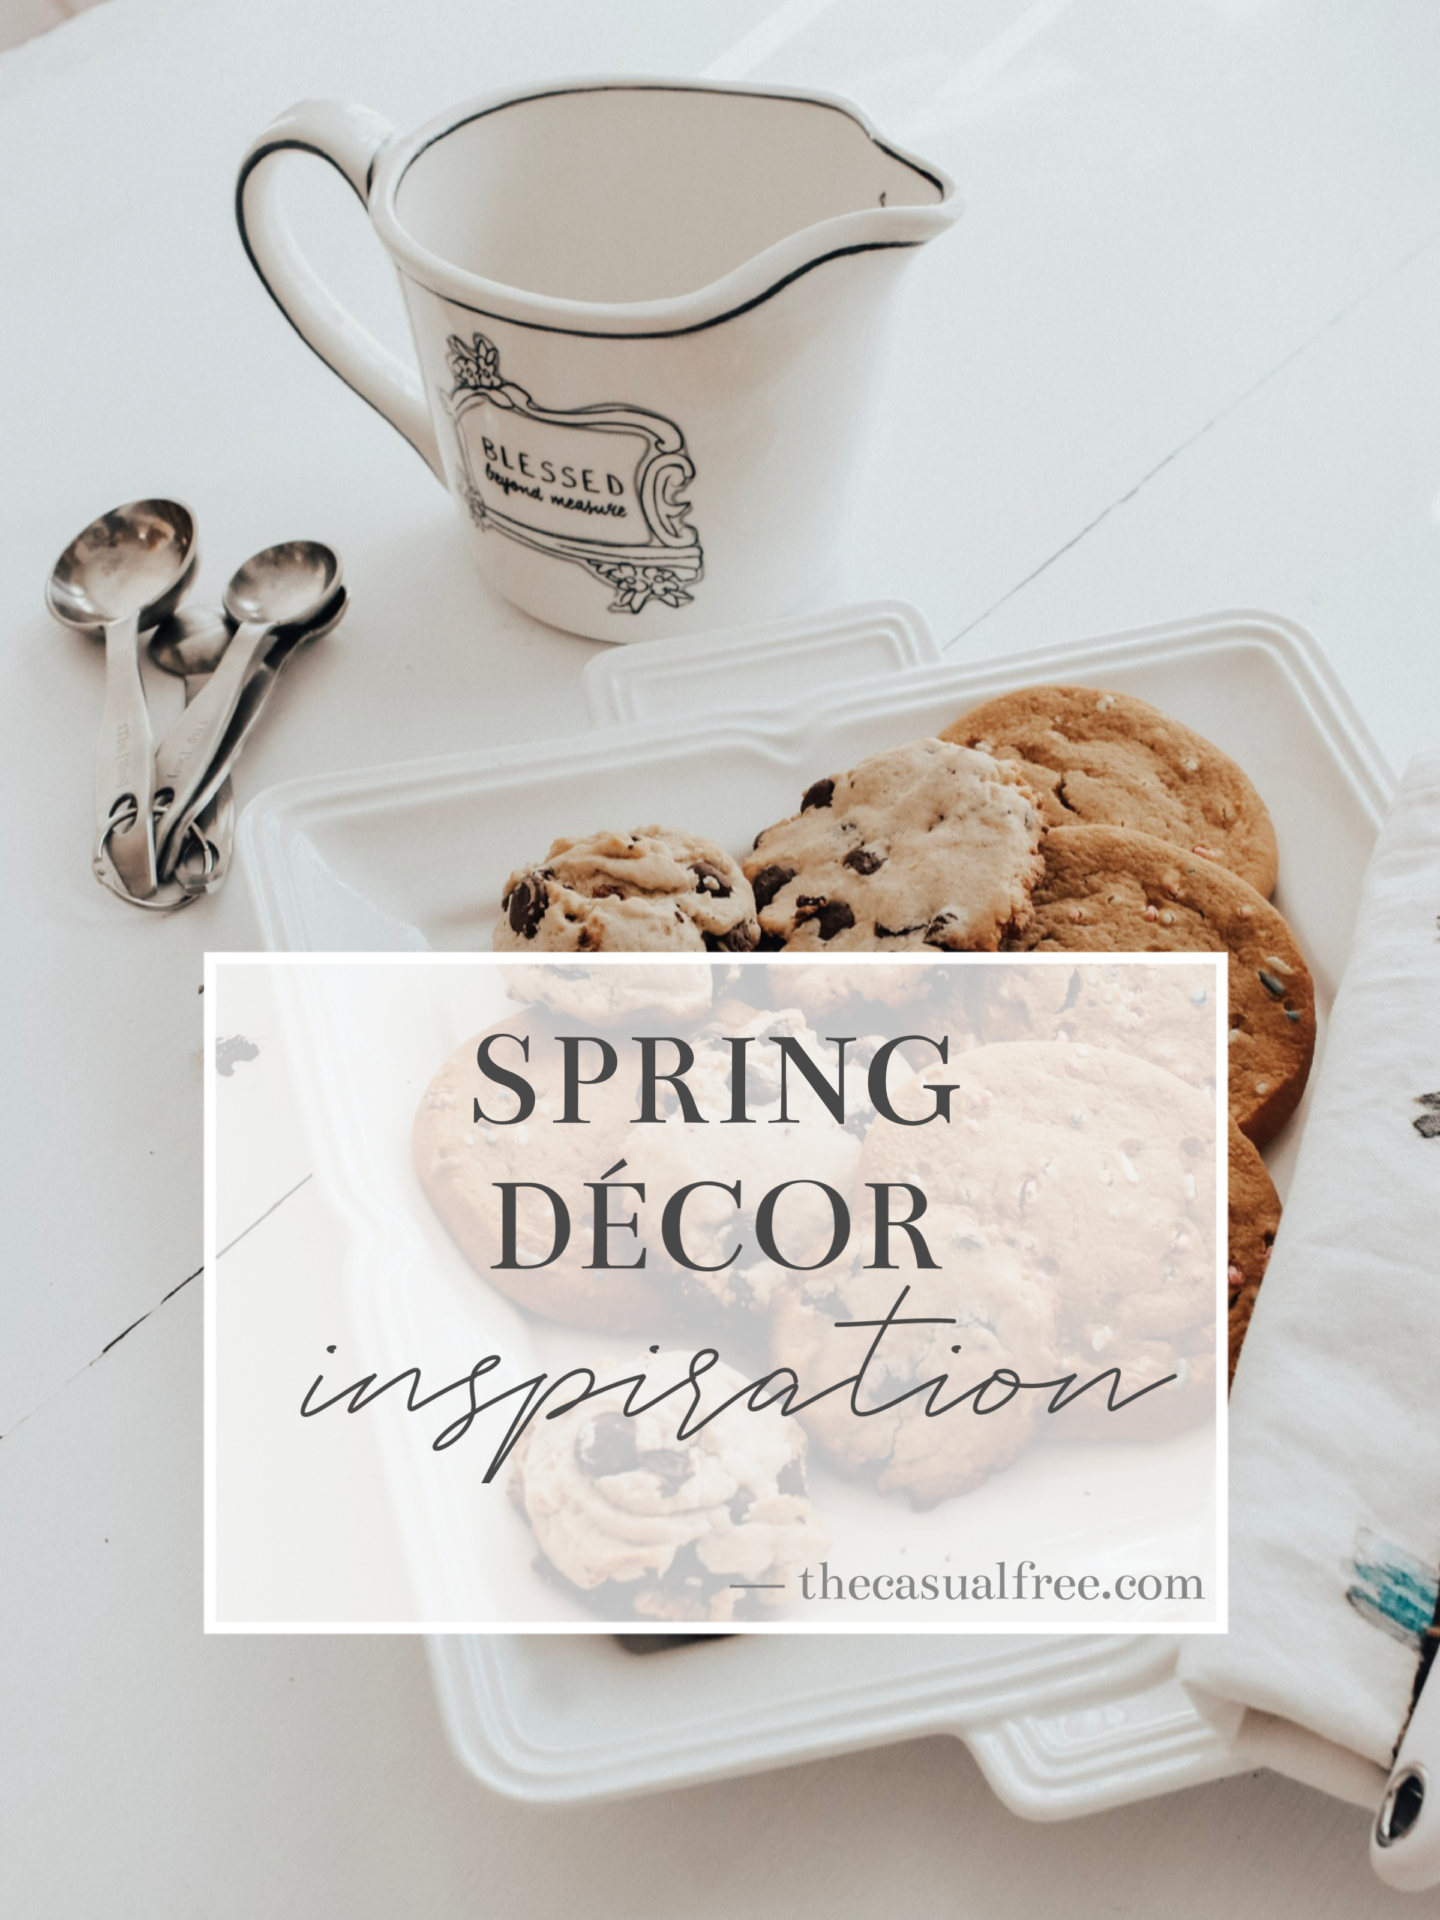 Spring Decor Inspiration: Farmhouse Accents - Stage Stores Home Decor - thecasualfree.com